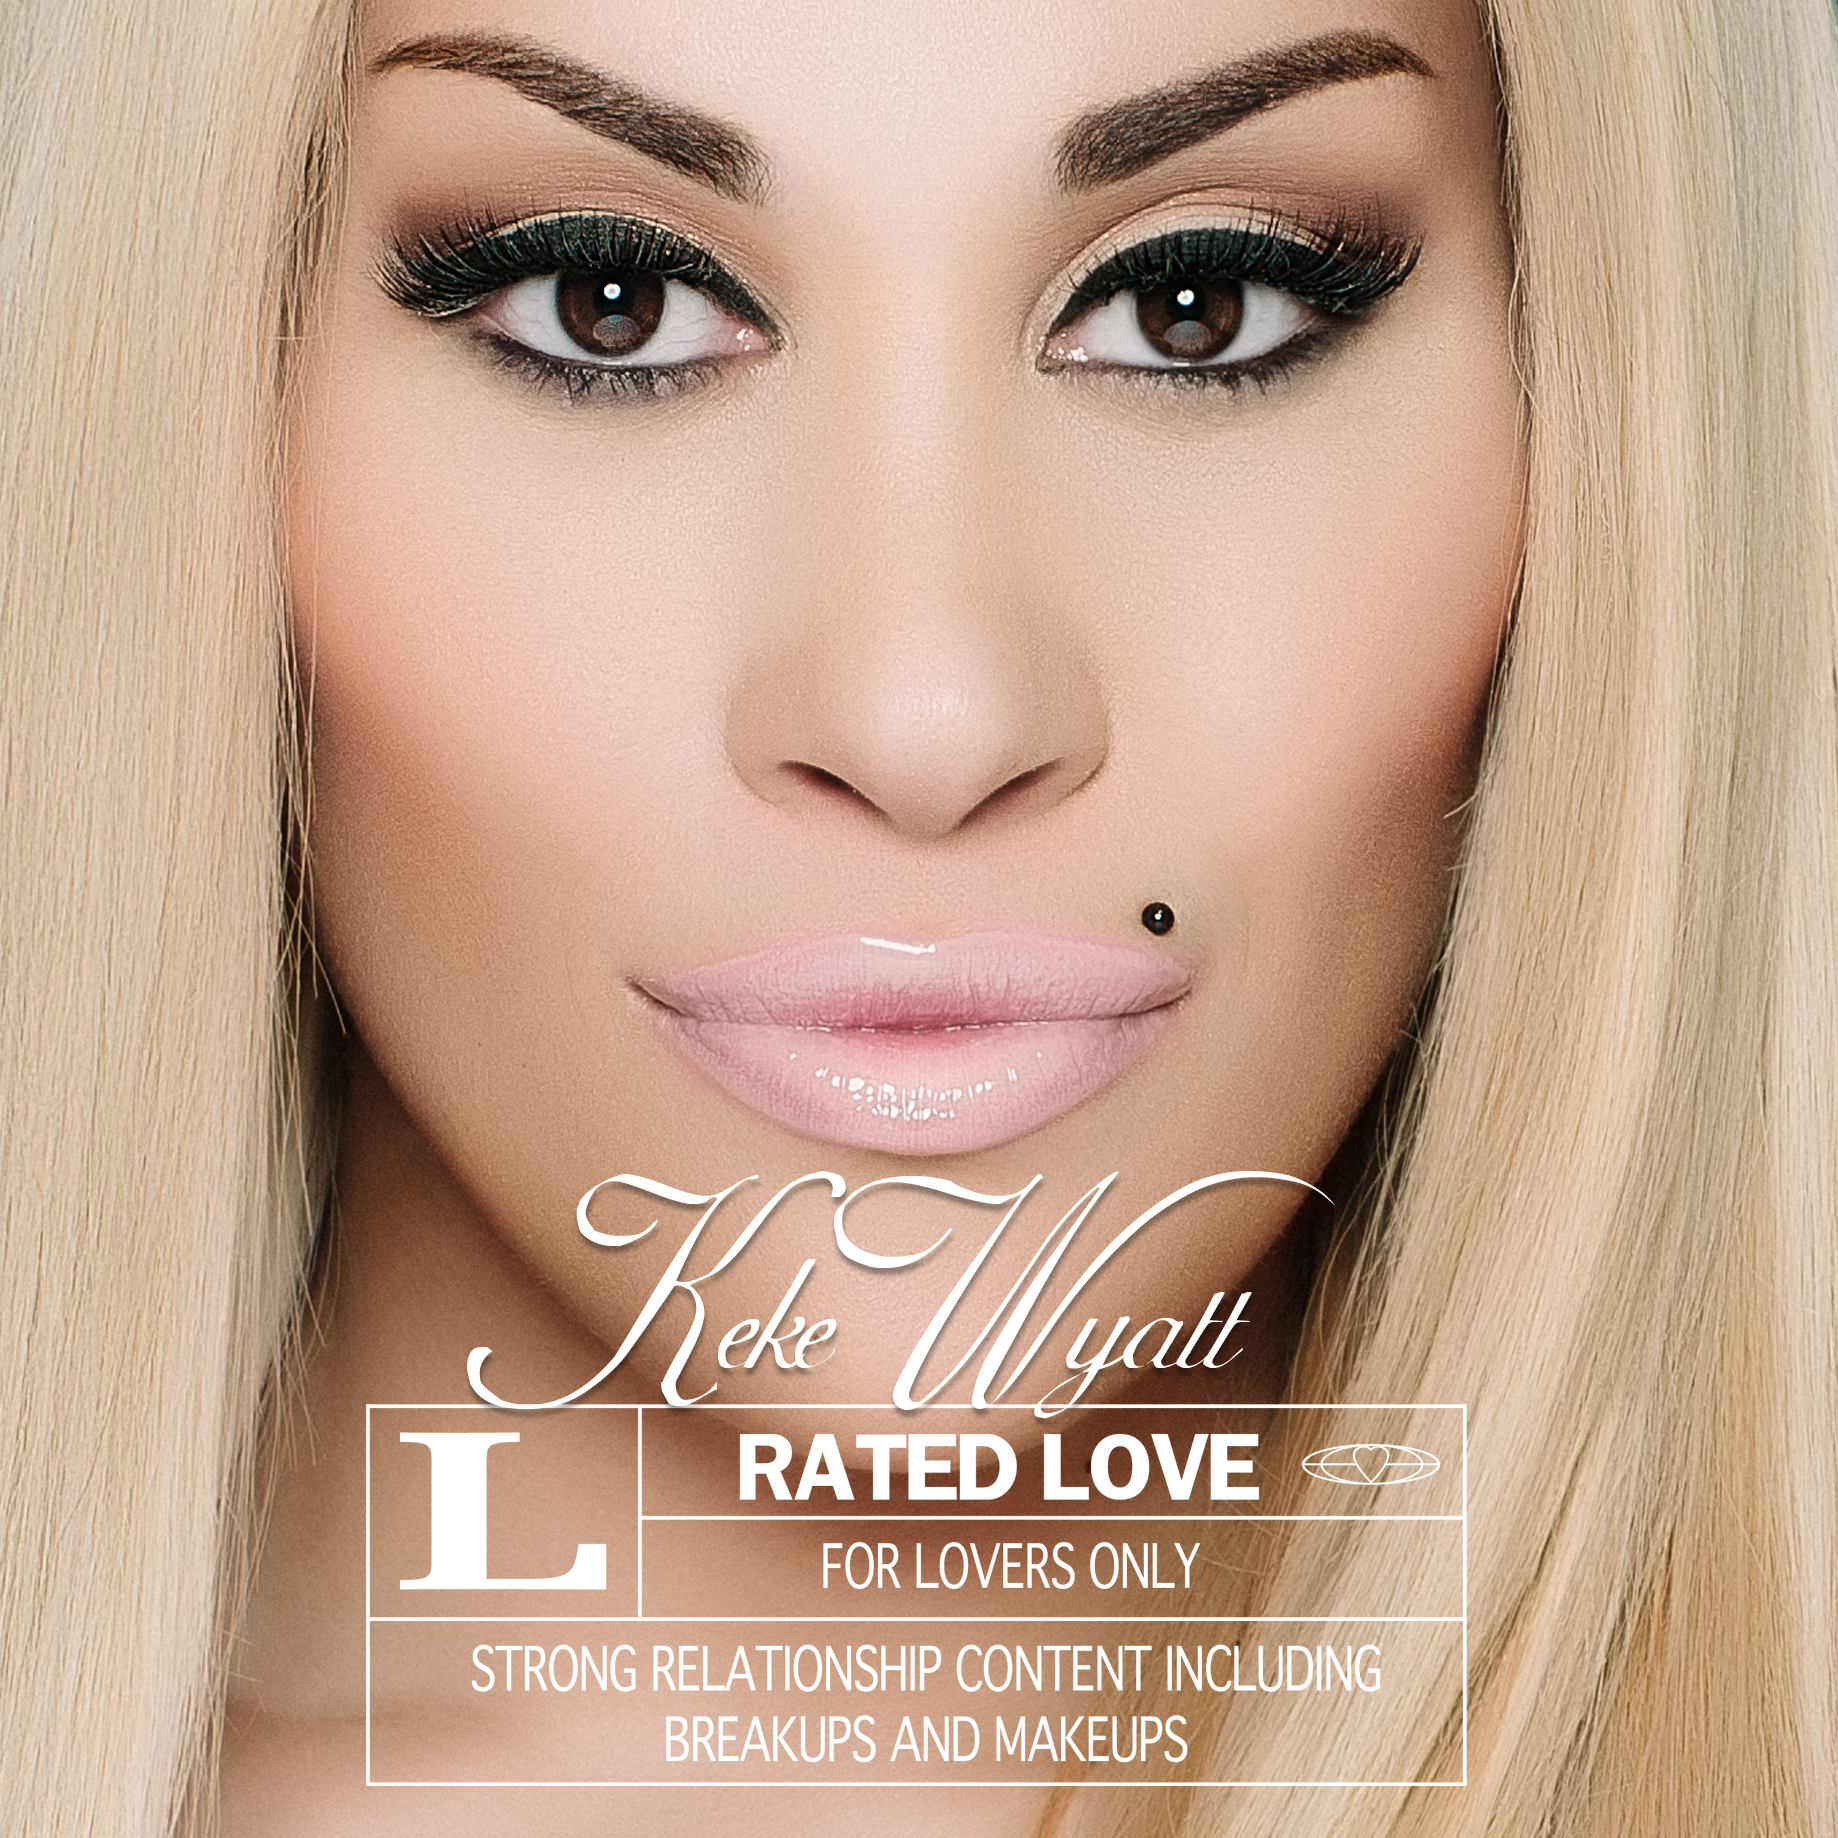 Keke Wyatt Rated Love Album Cover